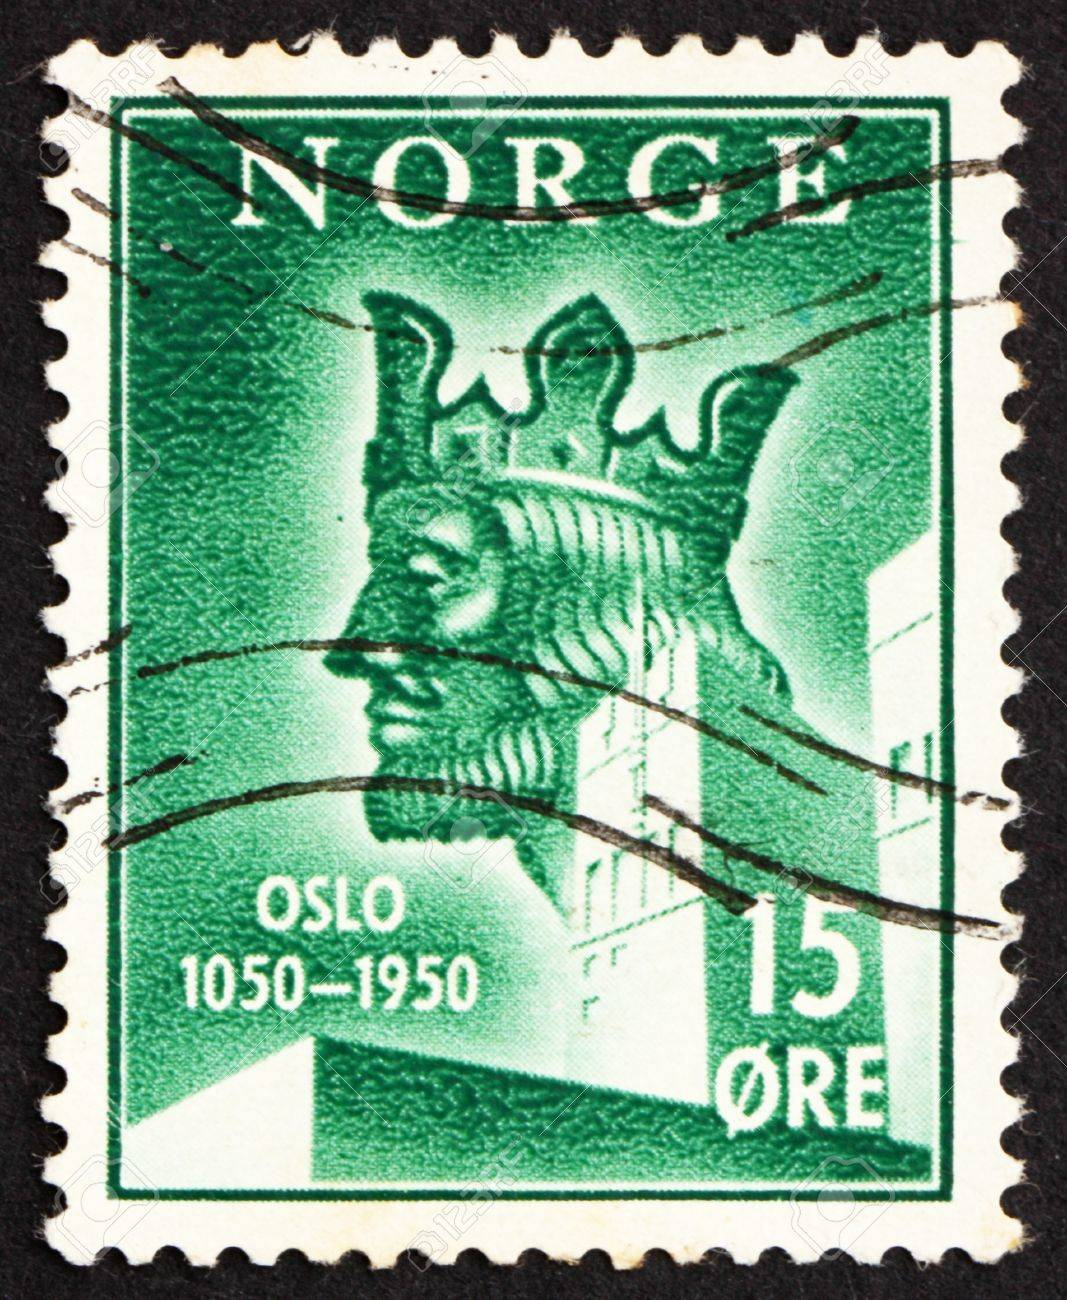 NORWAY - CIRCA 1950: a stamp printed in the Norway shows King Harald Sigurdsson Haardraada, 900th Anniversary of Oslo, circa 1950 Stock Photo - 12179711